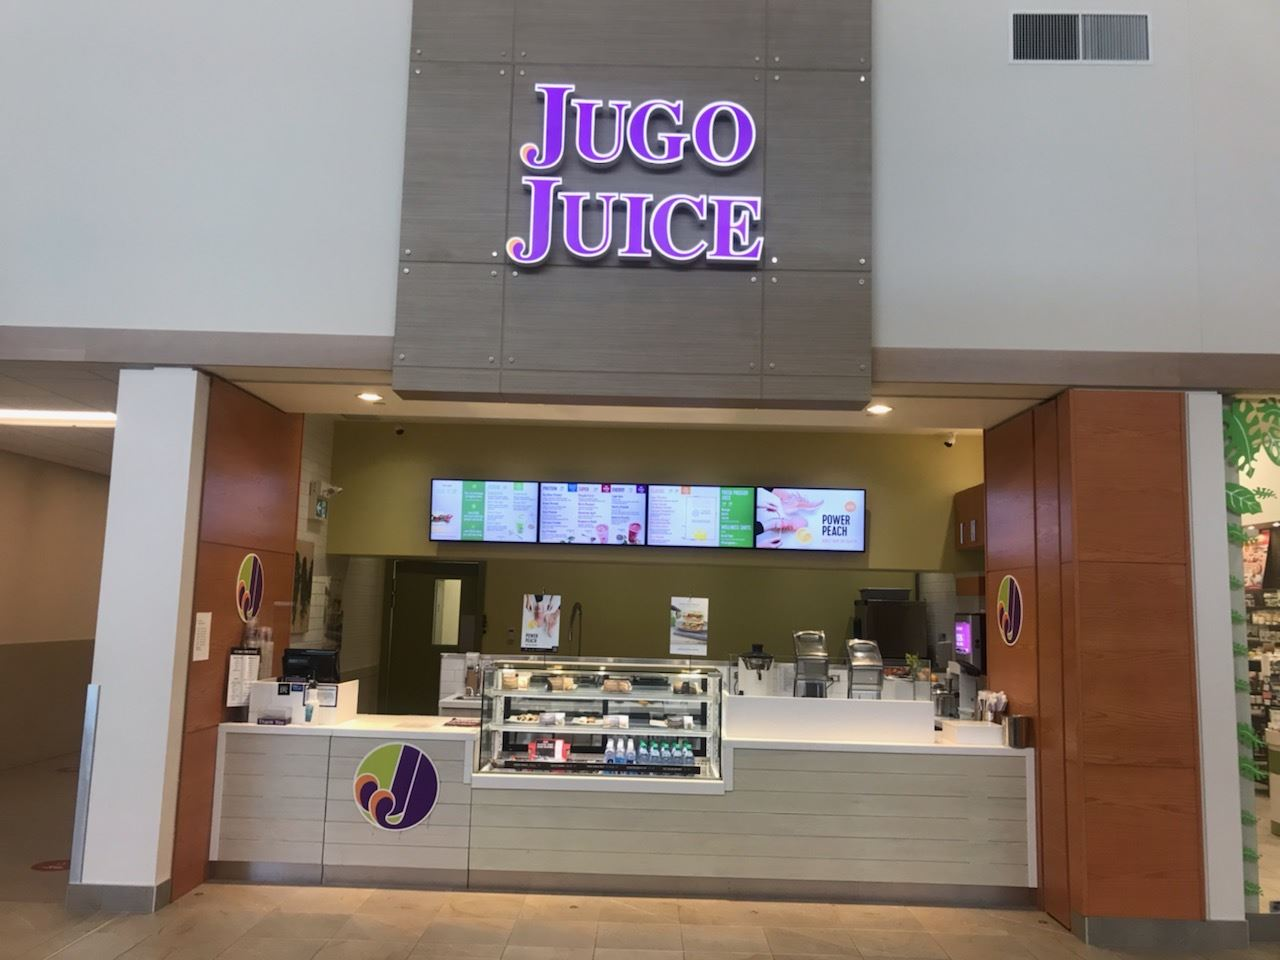 This JUGO JUICE business located in the Edmonton Outlet Mall. It is one of the most recognized brand for smoothies in Canada. It offers the finest smoothies, snacks and healthy lifestyle products. Simple menu and easy to operated. This business is ideal for family managed. The Mall becomes more and more good brand store join in and give more traffic for the business and sales will increase.